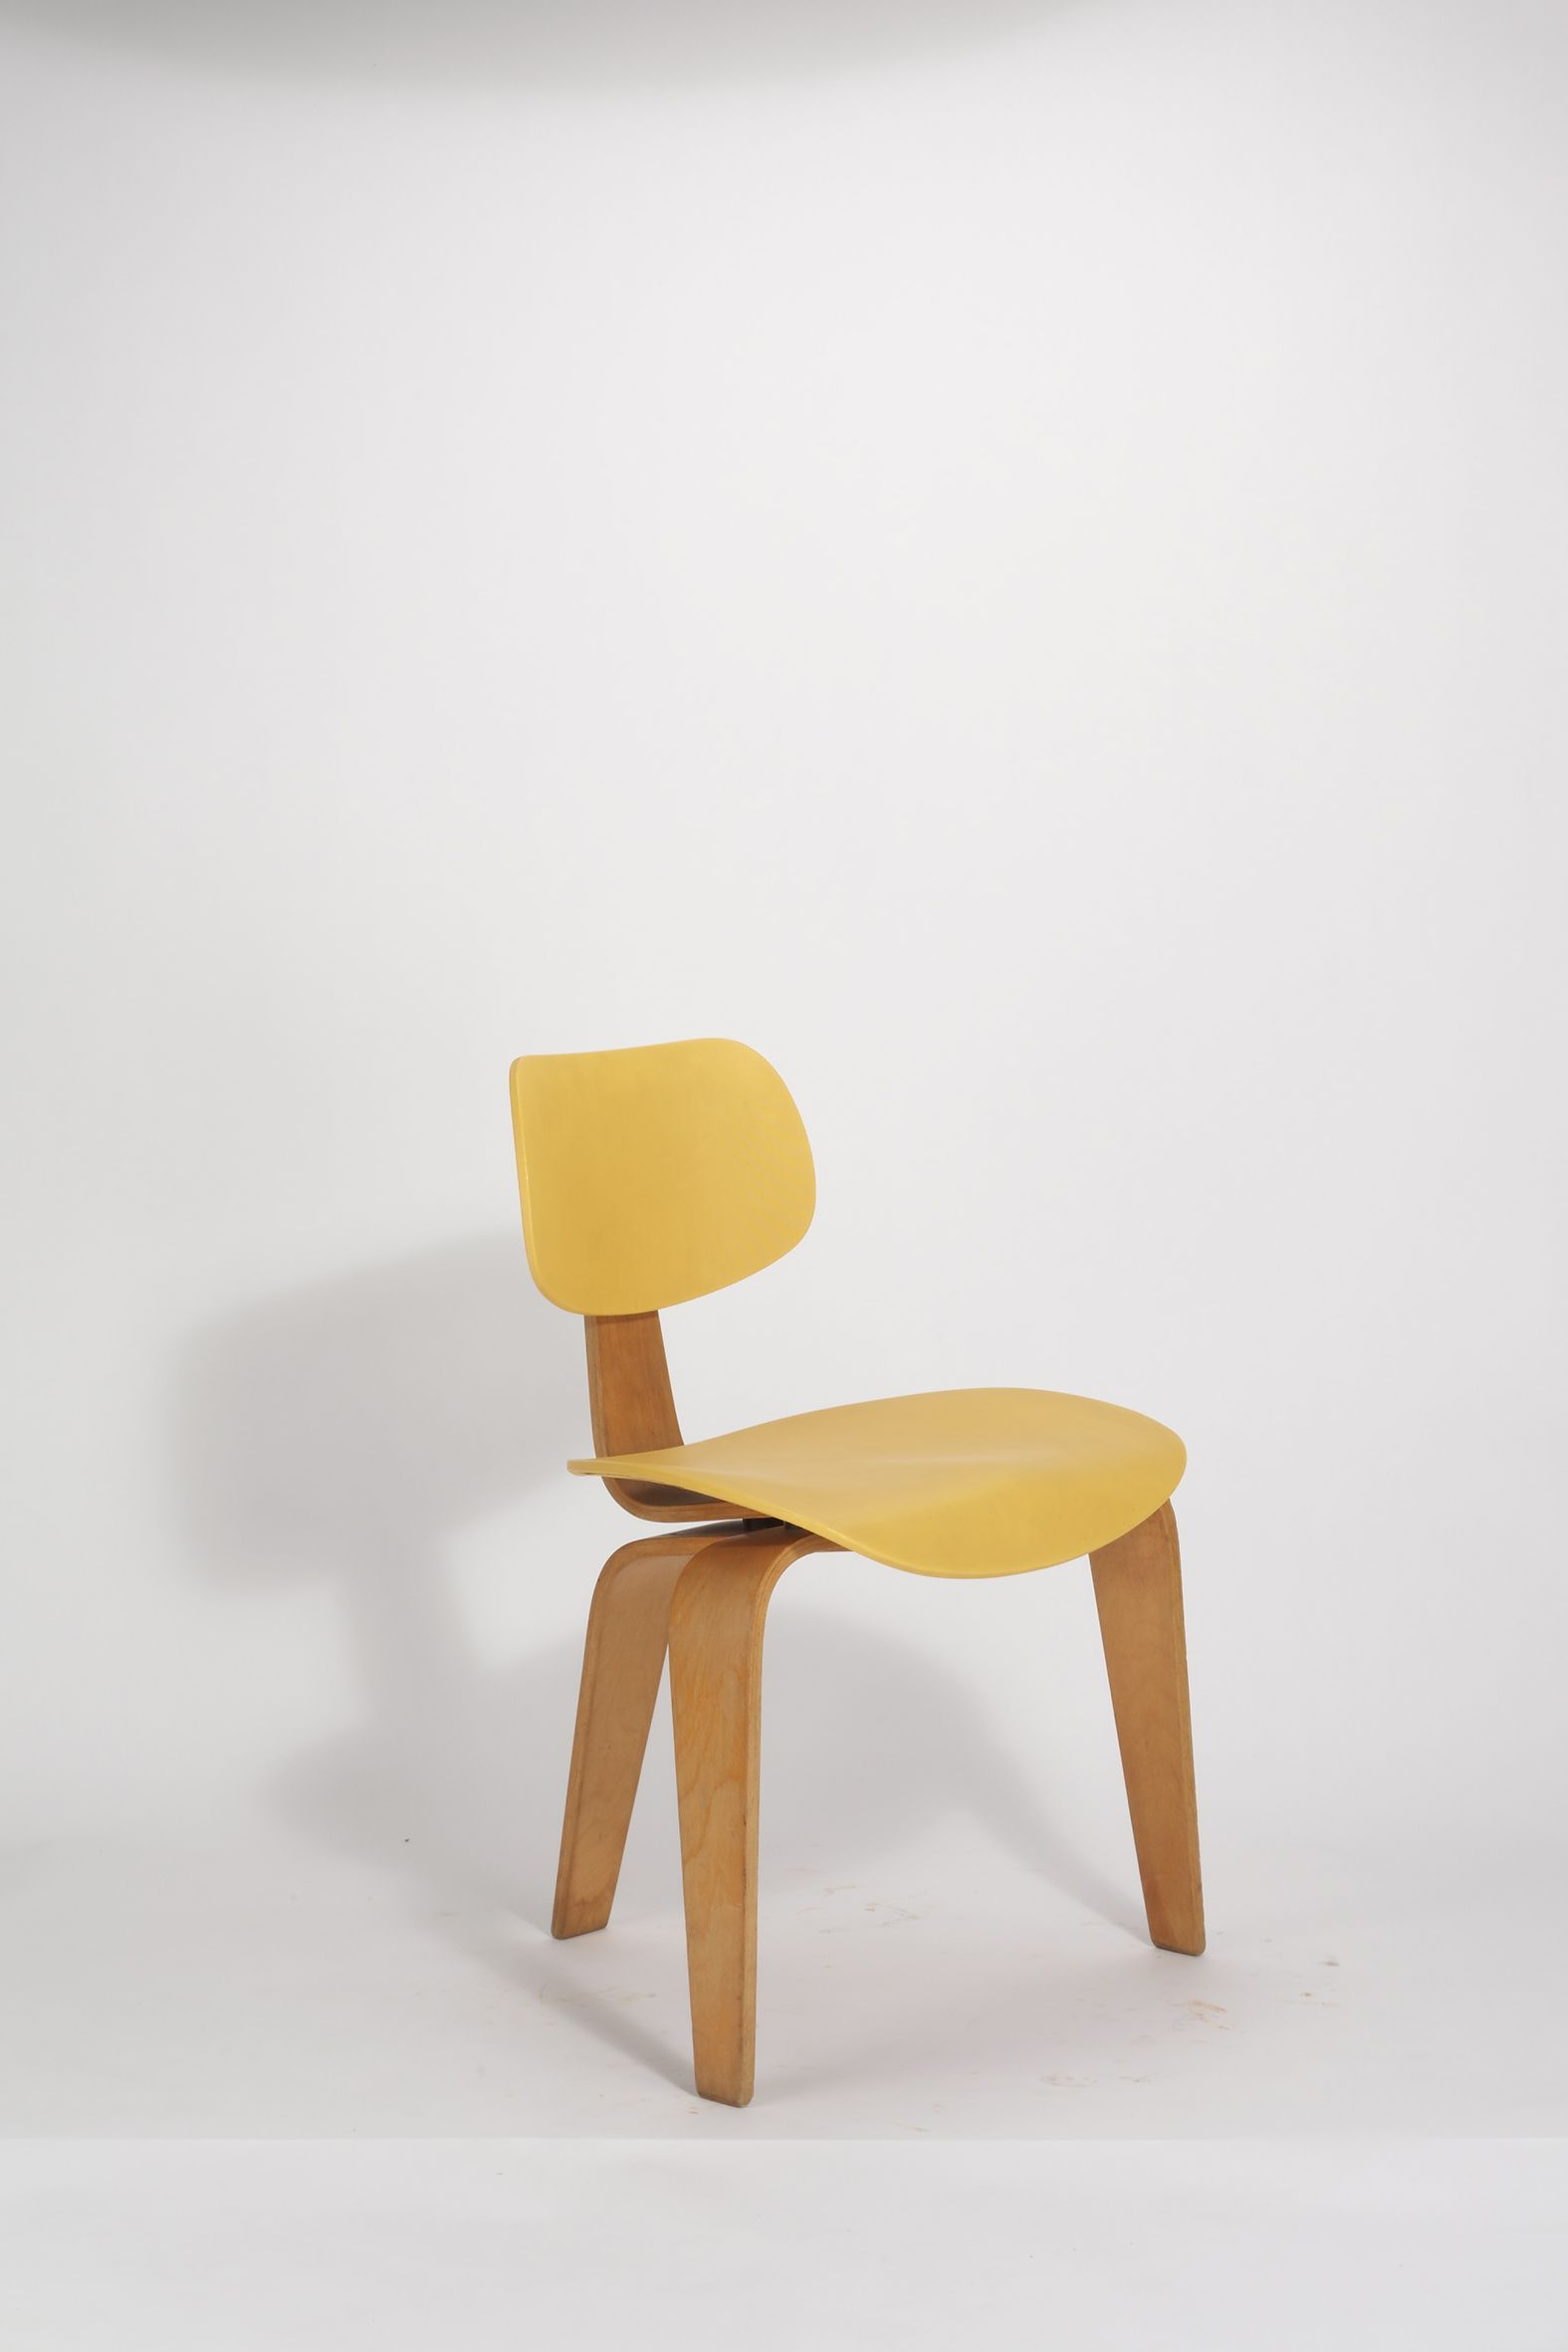 Eiermann Sessel Egon Eiermann Se 42 Ca 1953 Loeffler Collection Chairs